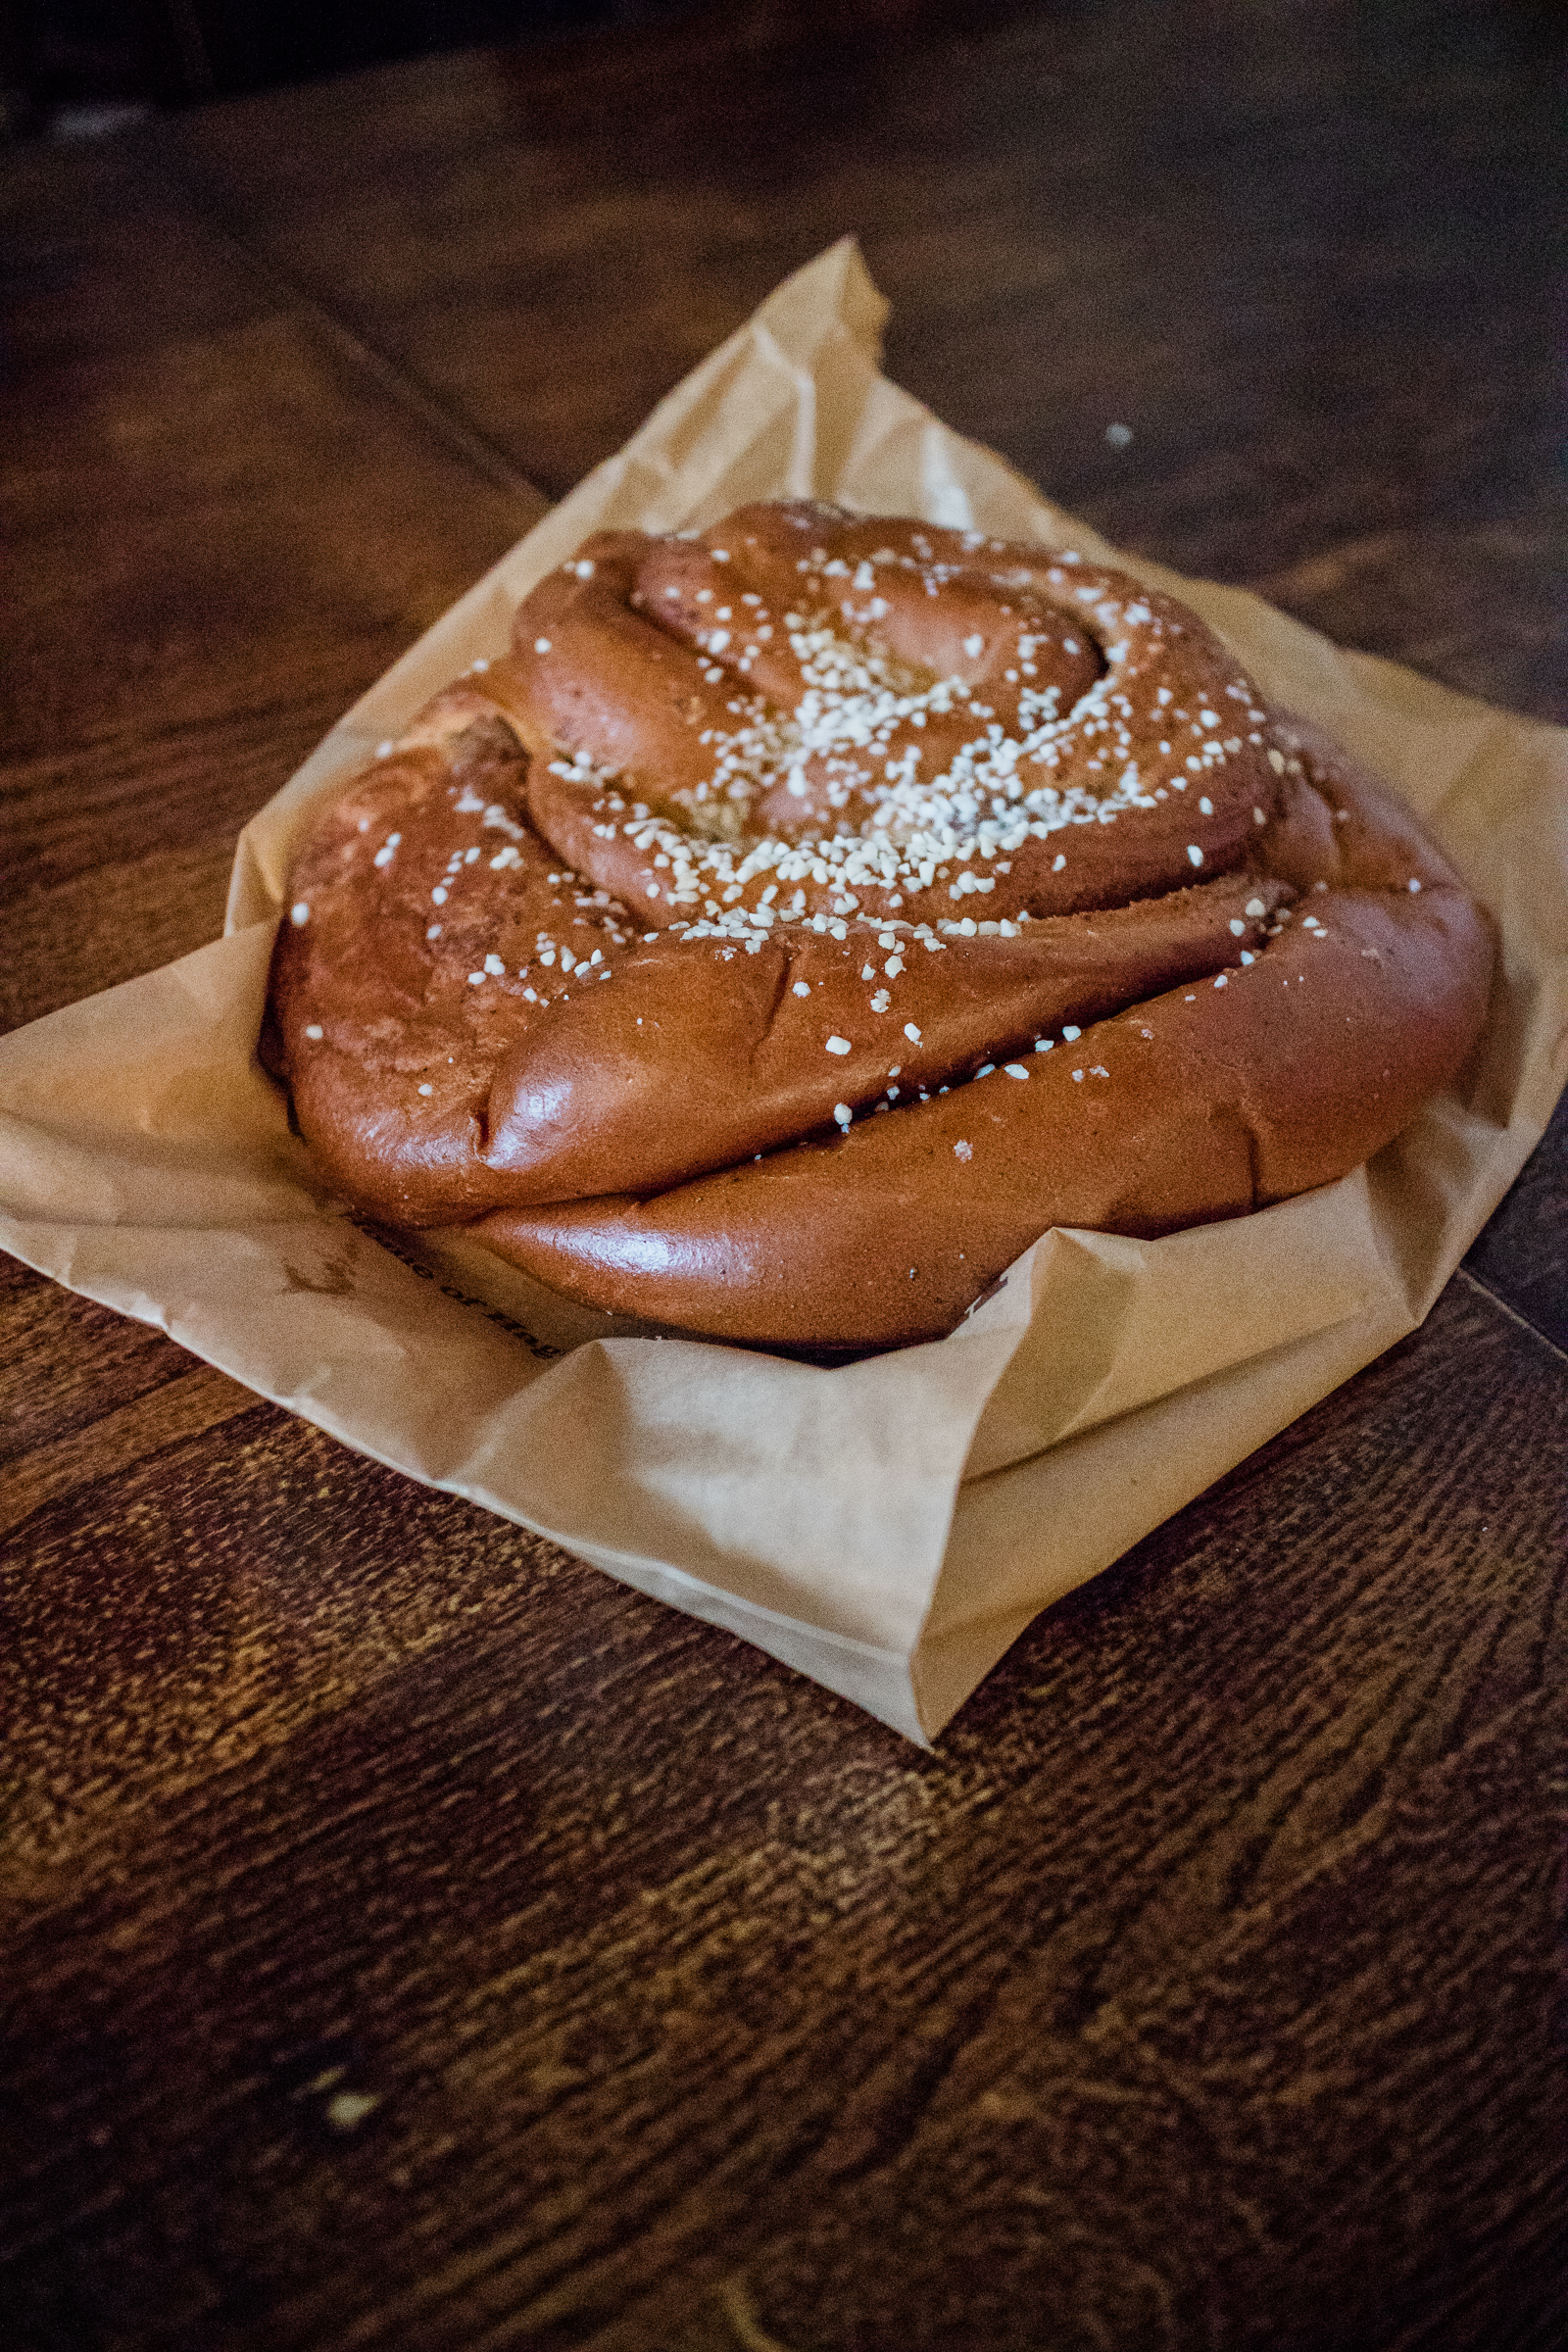 This is a Haga bun! The giant cinnamon bun is a specialty of Café Husaren!